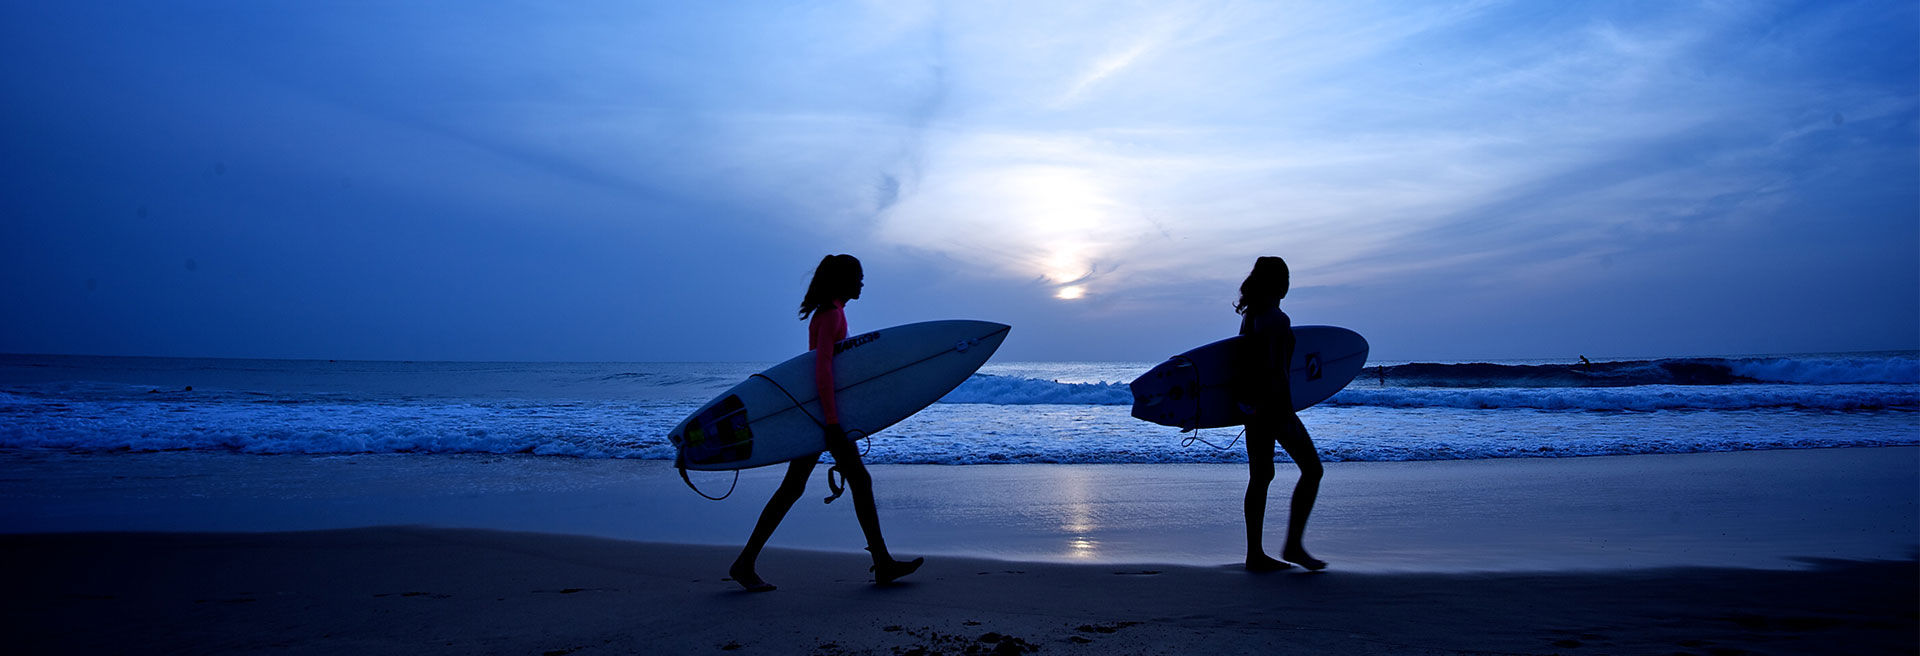 walking on the beach with Surf boards